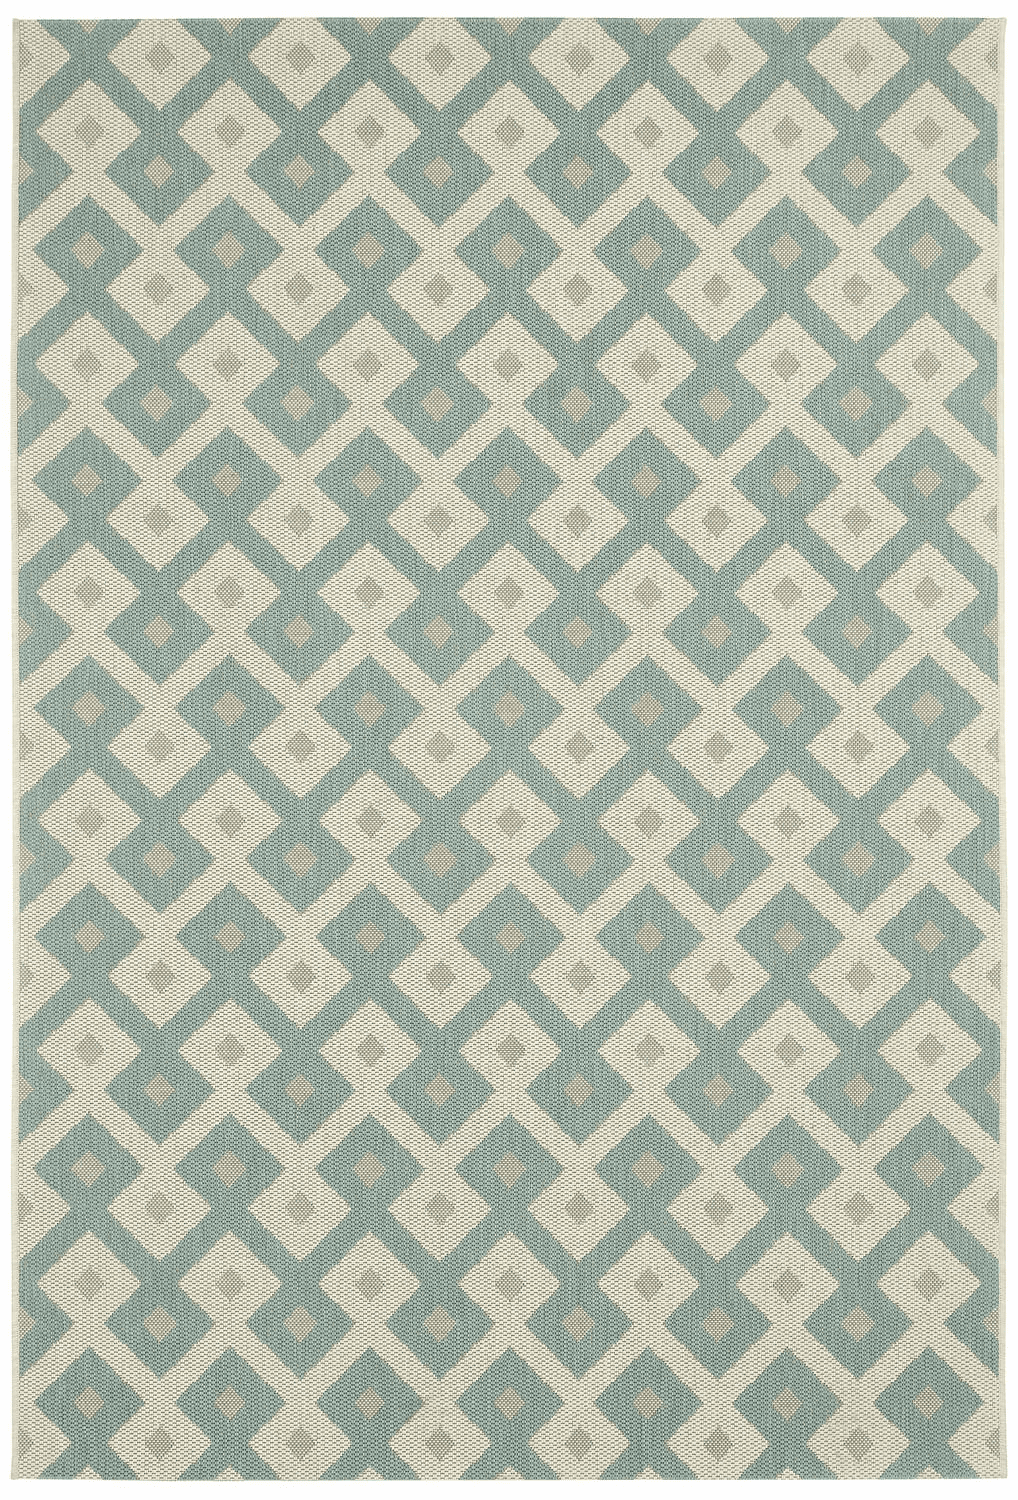 Machine Woven Resort Blue Rug